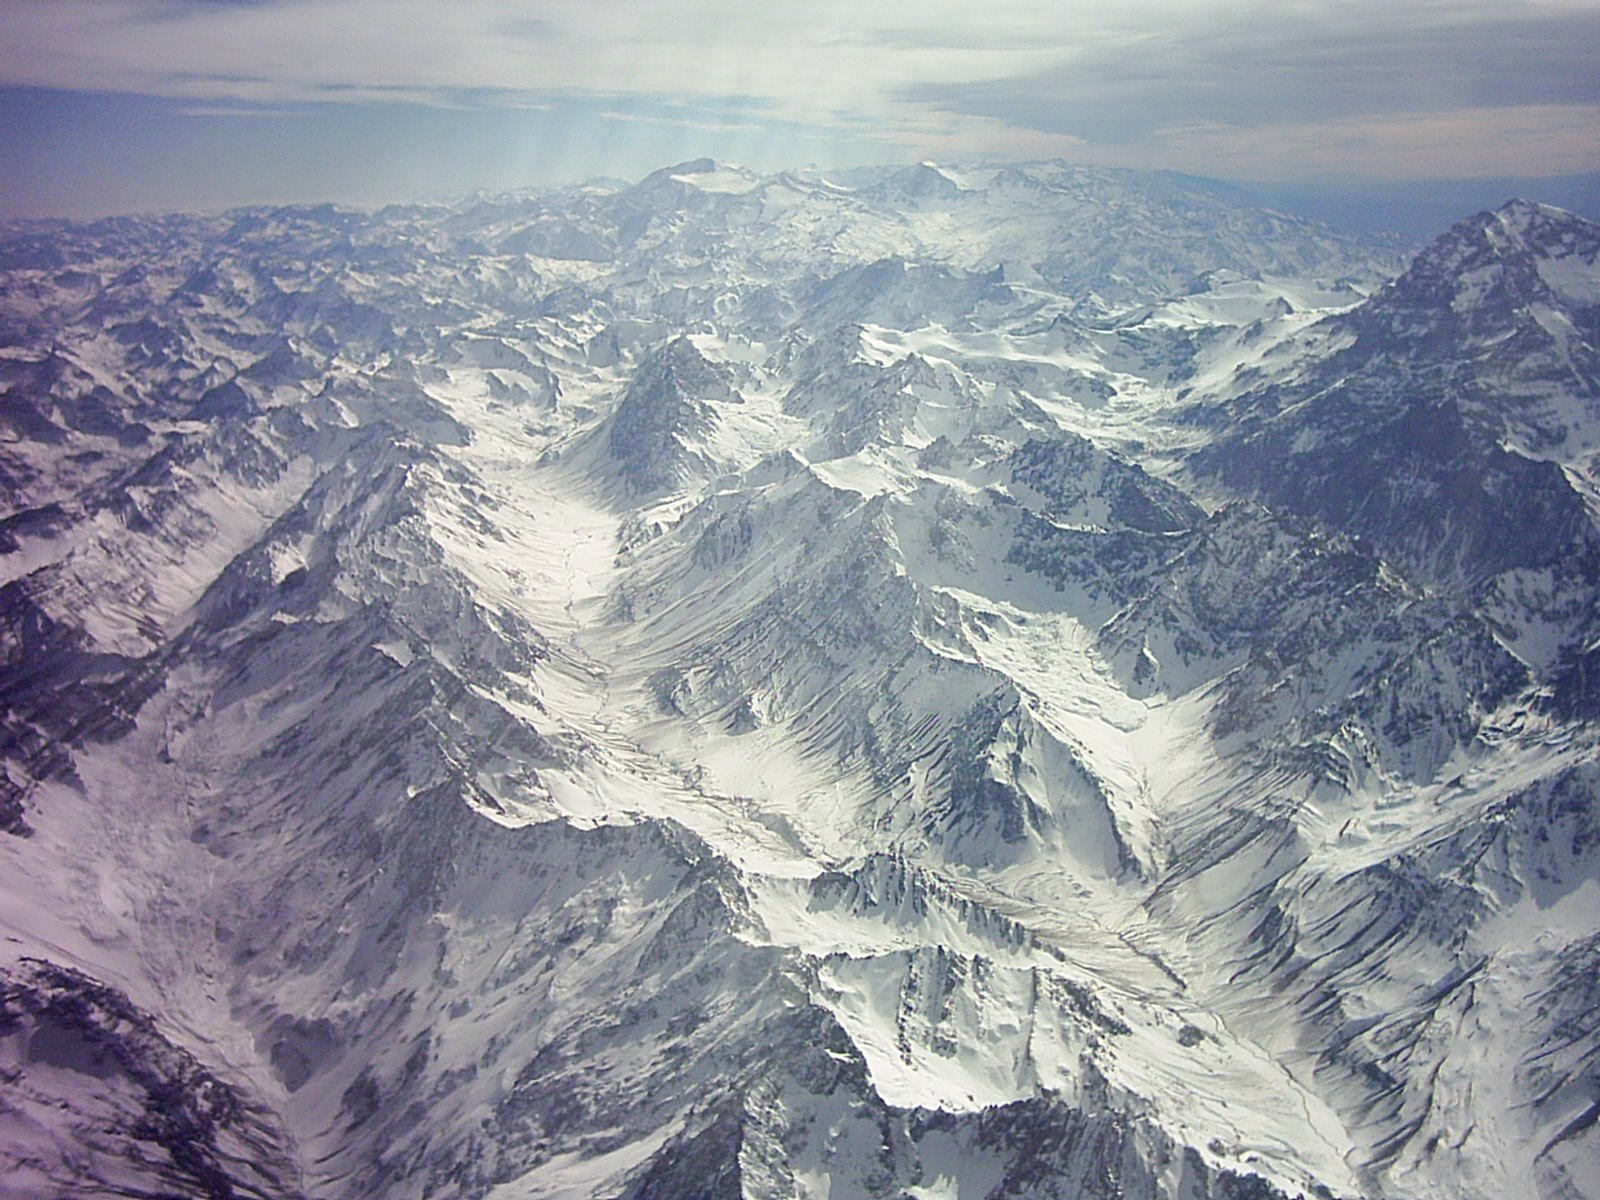 The Andes mountain range shows its beauty in the ...